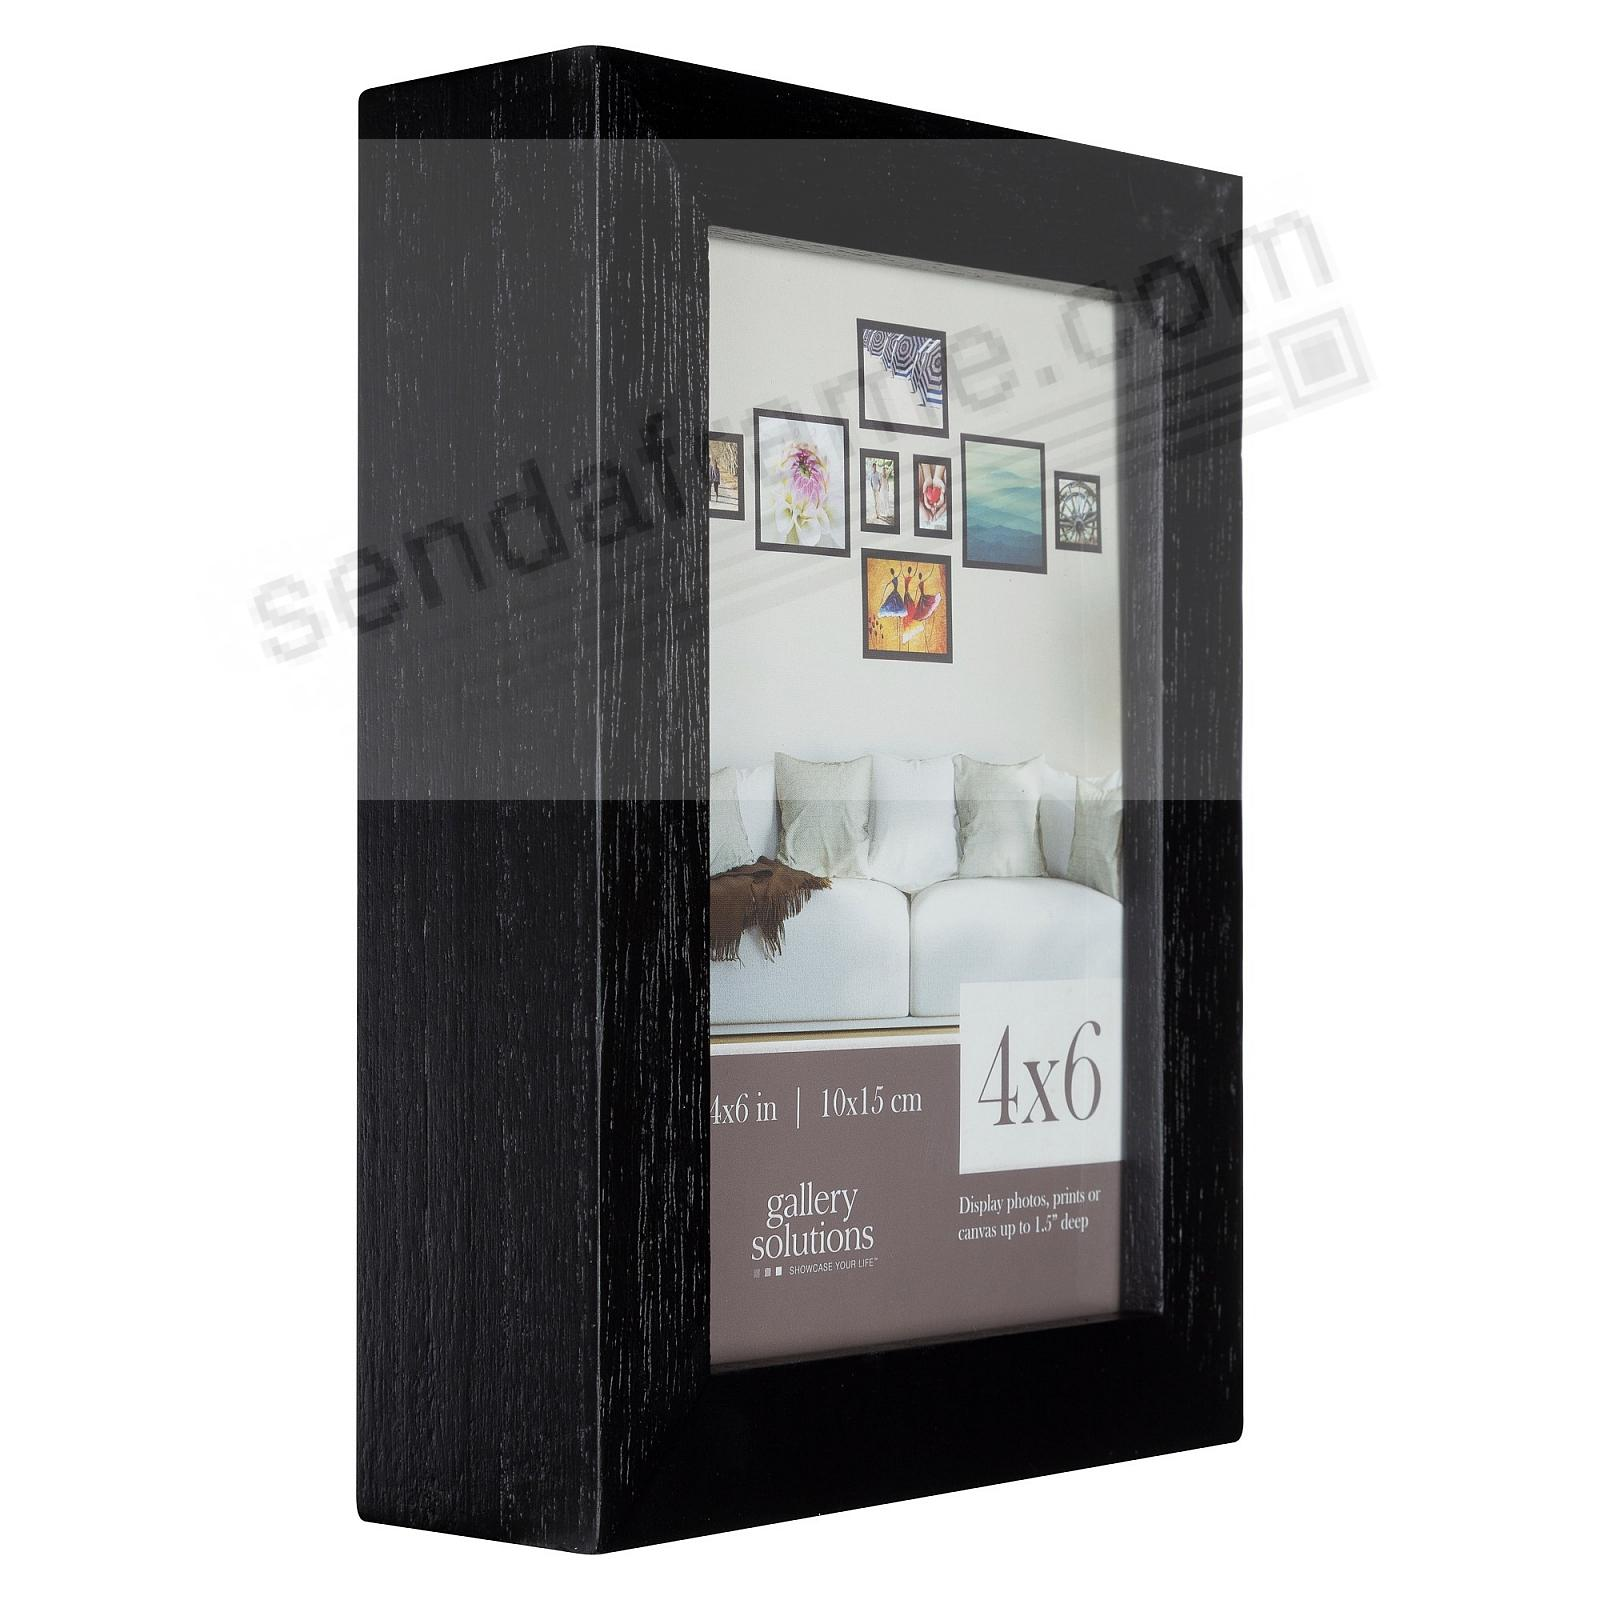 BLACK GALLERY 4x6 frame by Gallery Solutions®